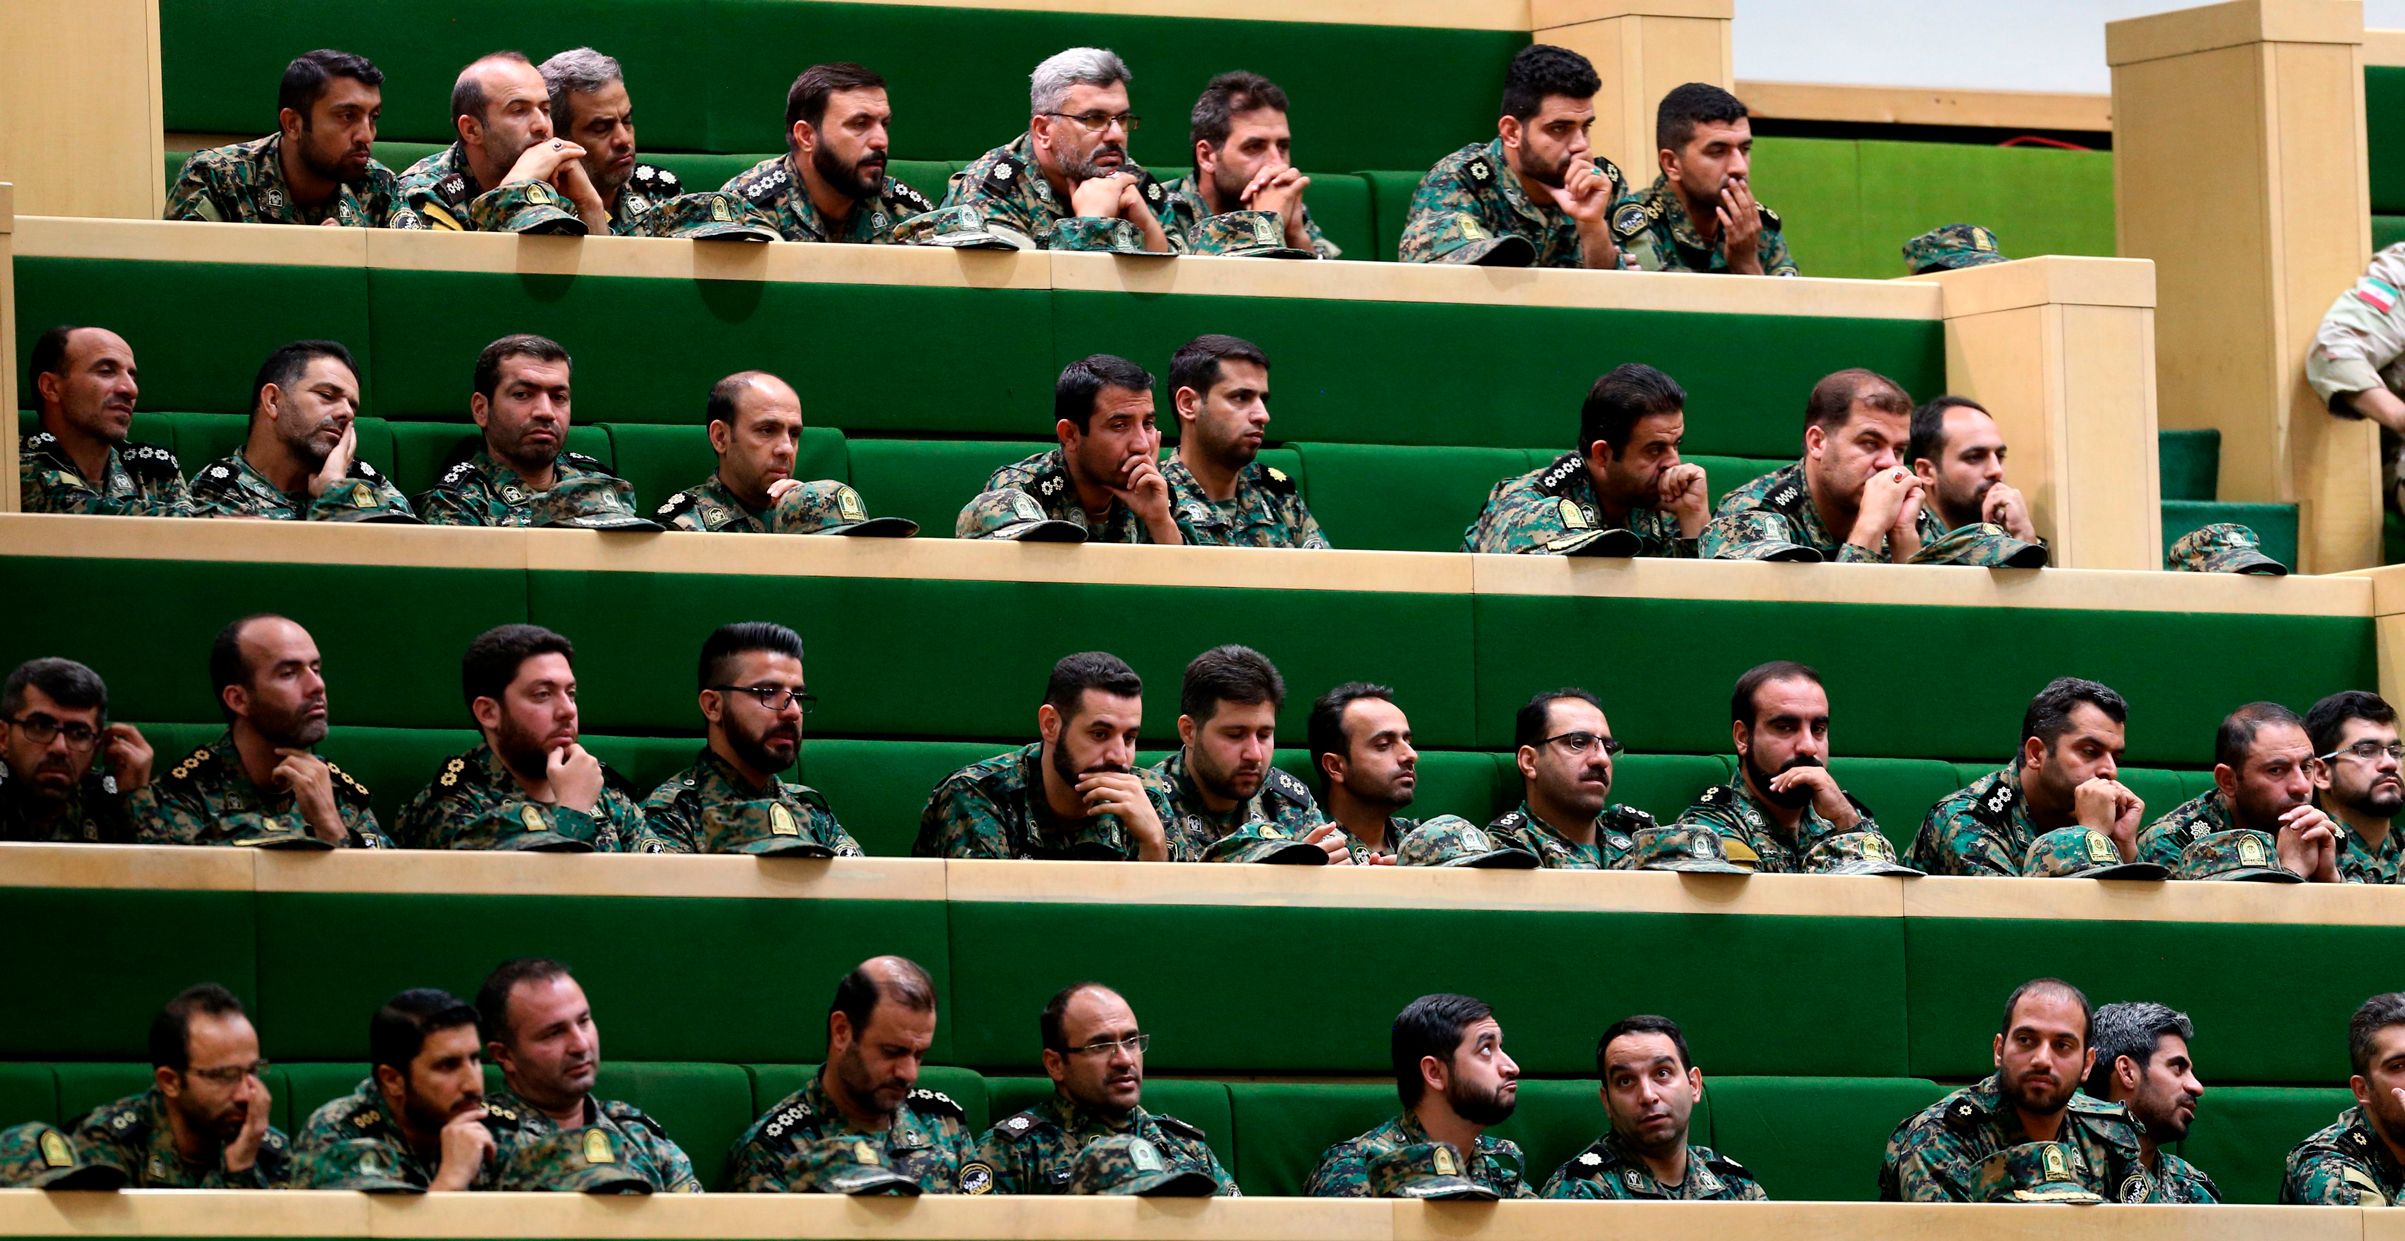 Members of the Iranian Revolutionary Guard Corps listen to a speech in parliament in Tehran on Oct. 7, 2018.